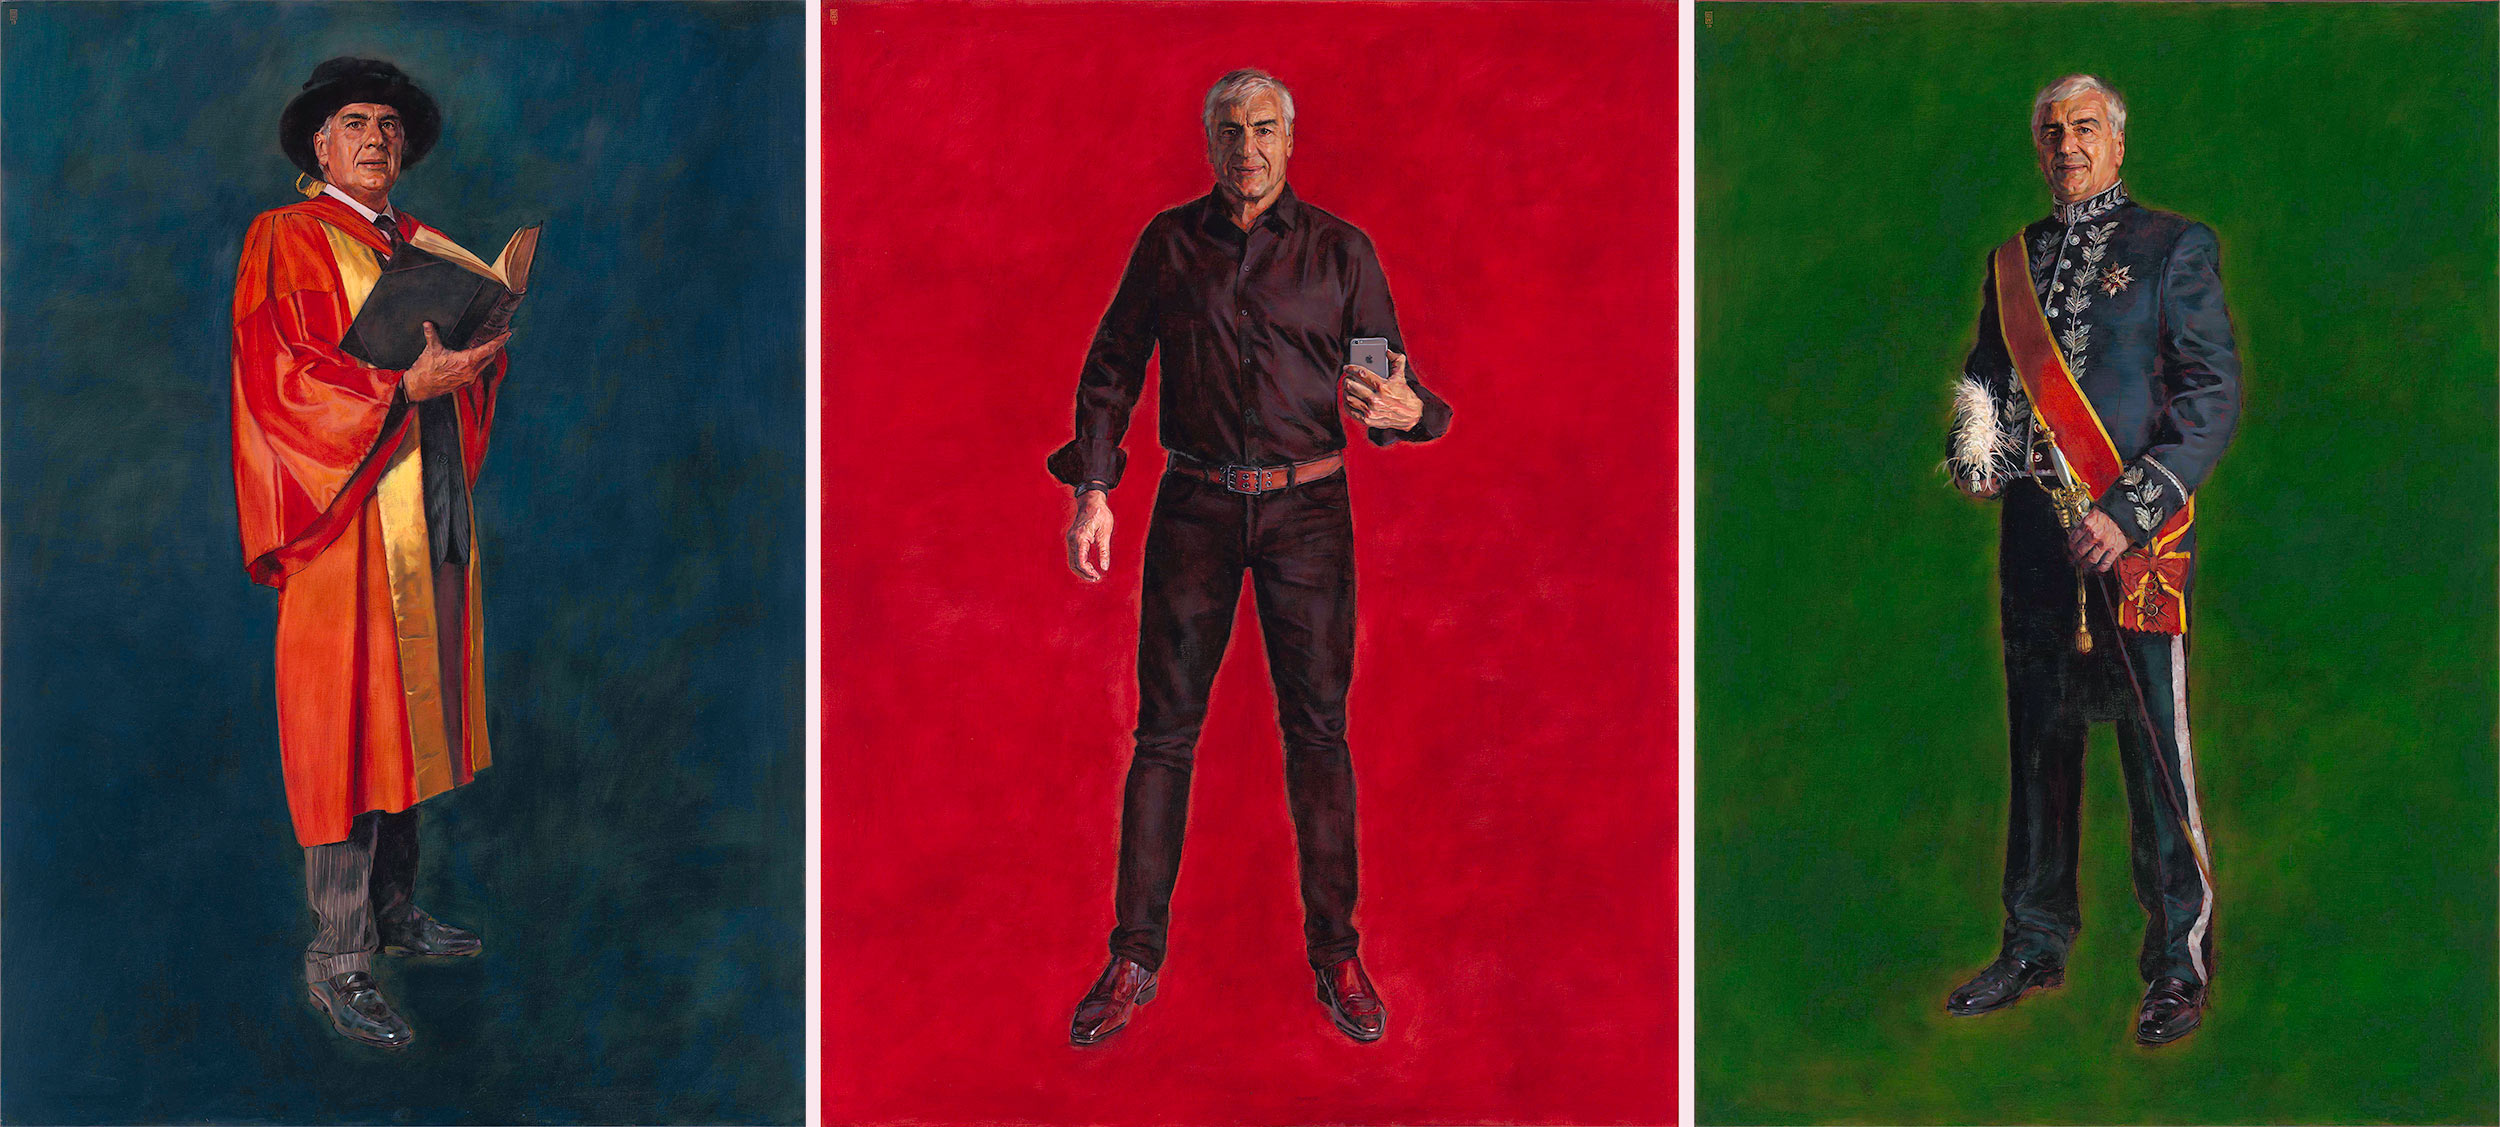 A Man In Uniform  - The Scholar, The Elvis Selfie (After Warhol) & The Papal Knight    Oil on linen 185 cm x 132 or 142 cm. 2019.  A site specific installation of portraits of Sir Michael Hintze conceived for the billiard room of country house, inspired by the various ceremonial uniforms or outfits pertaining to his life and career.